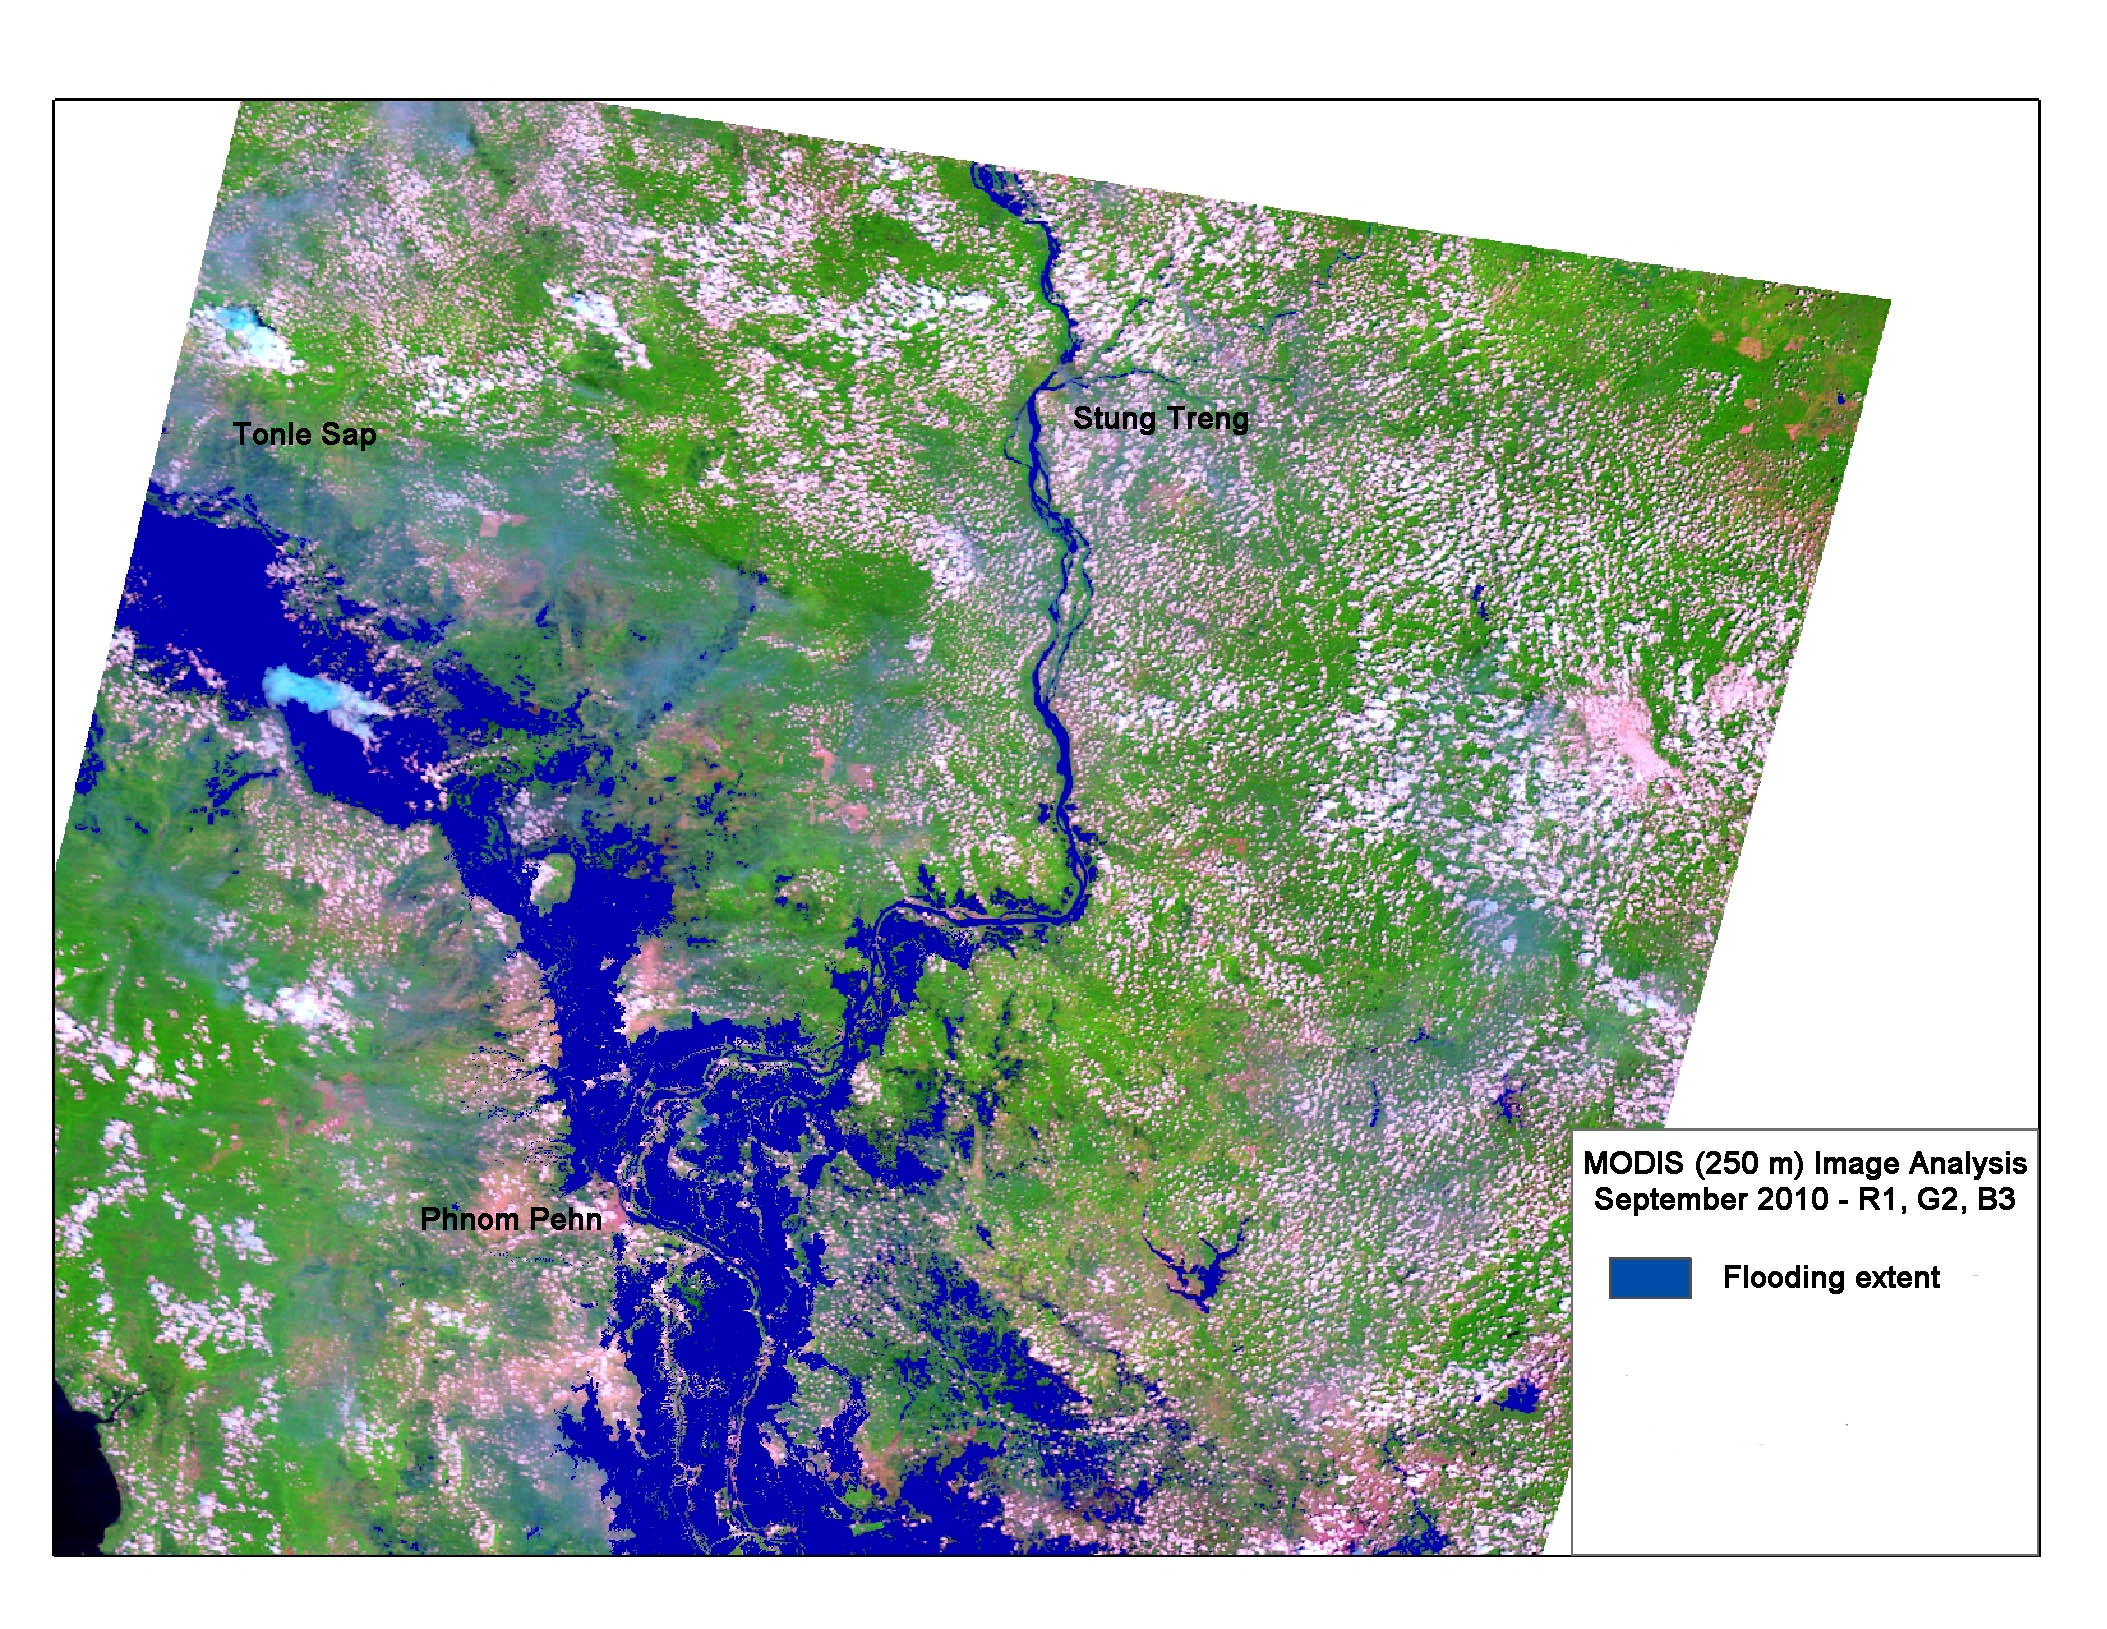 Flood Extent, September 2010